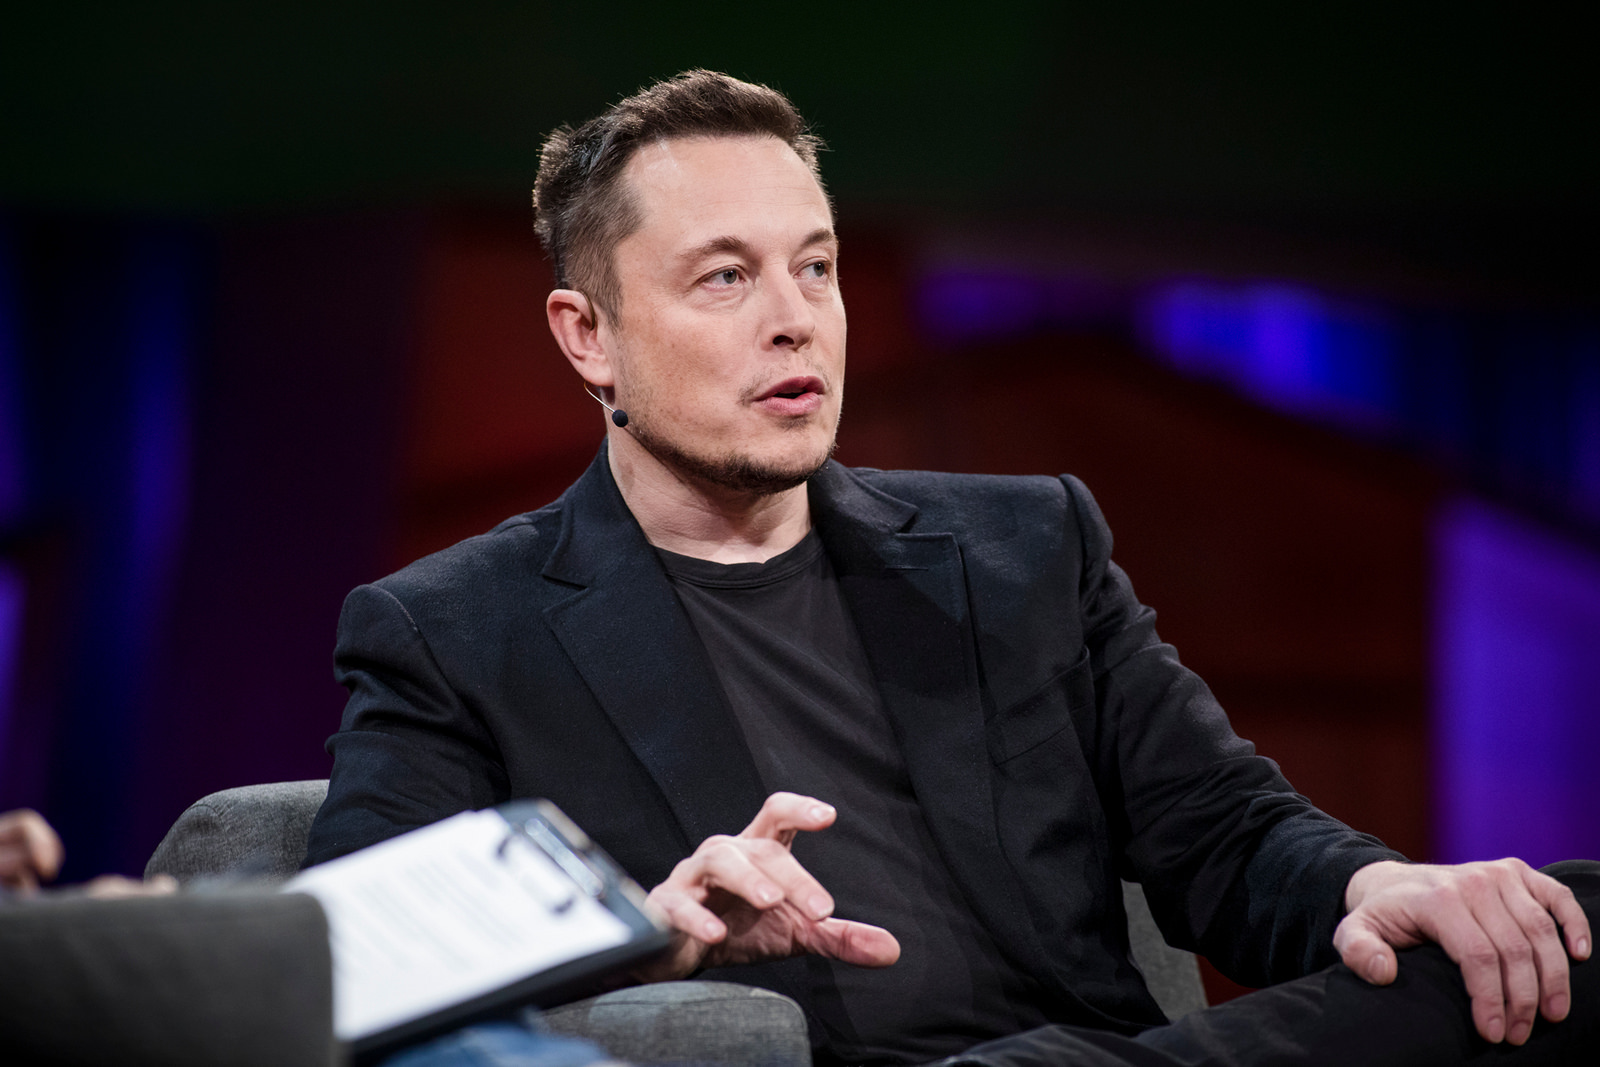 Be Like Elon Musk Think Vertical Vectors And Vision